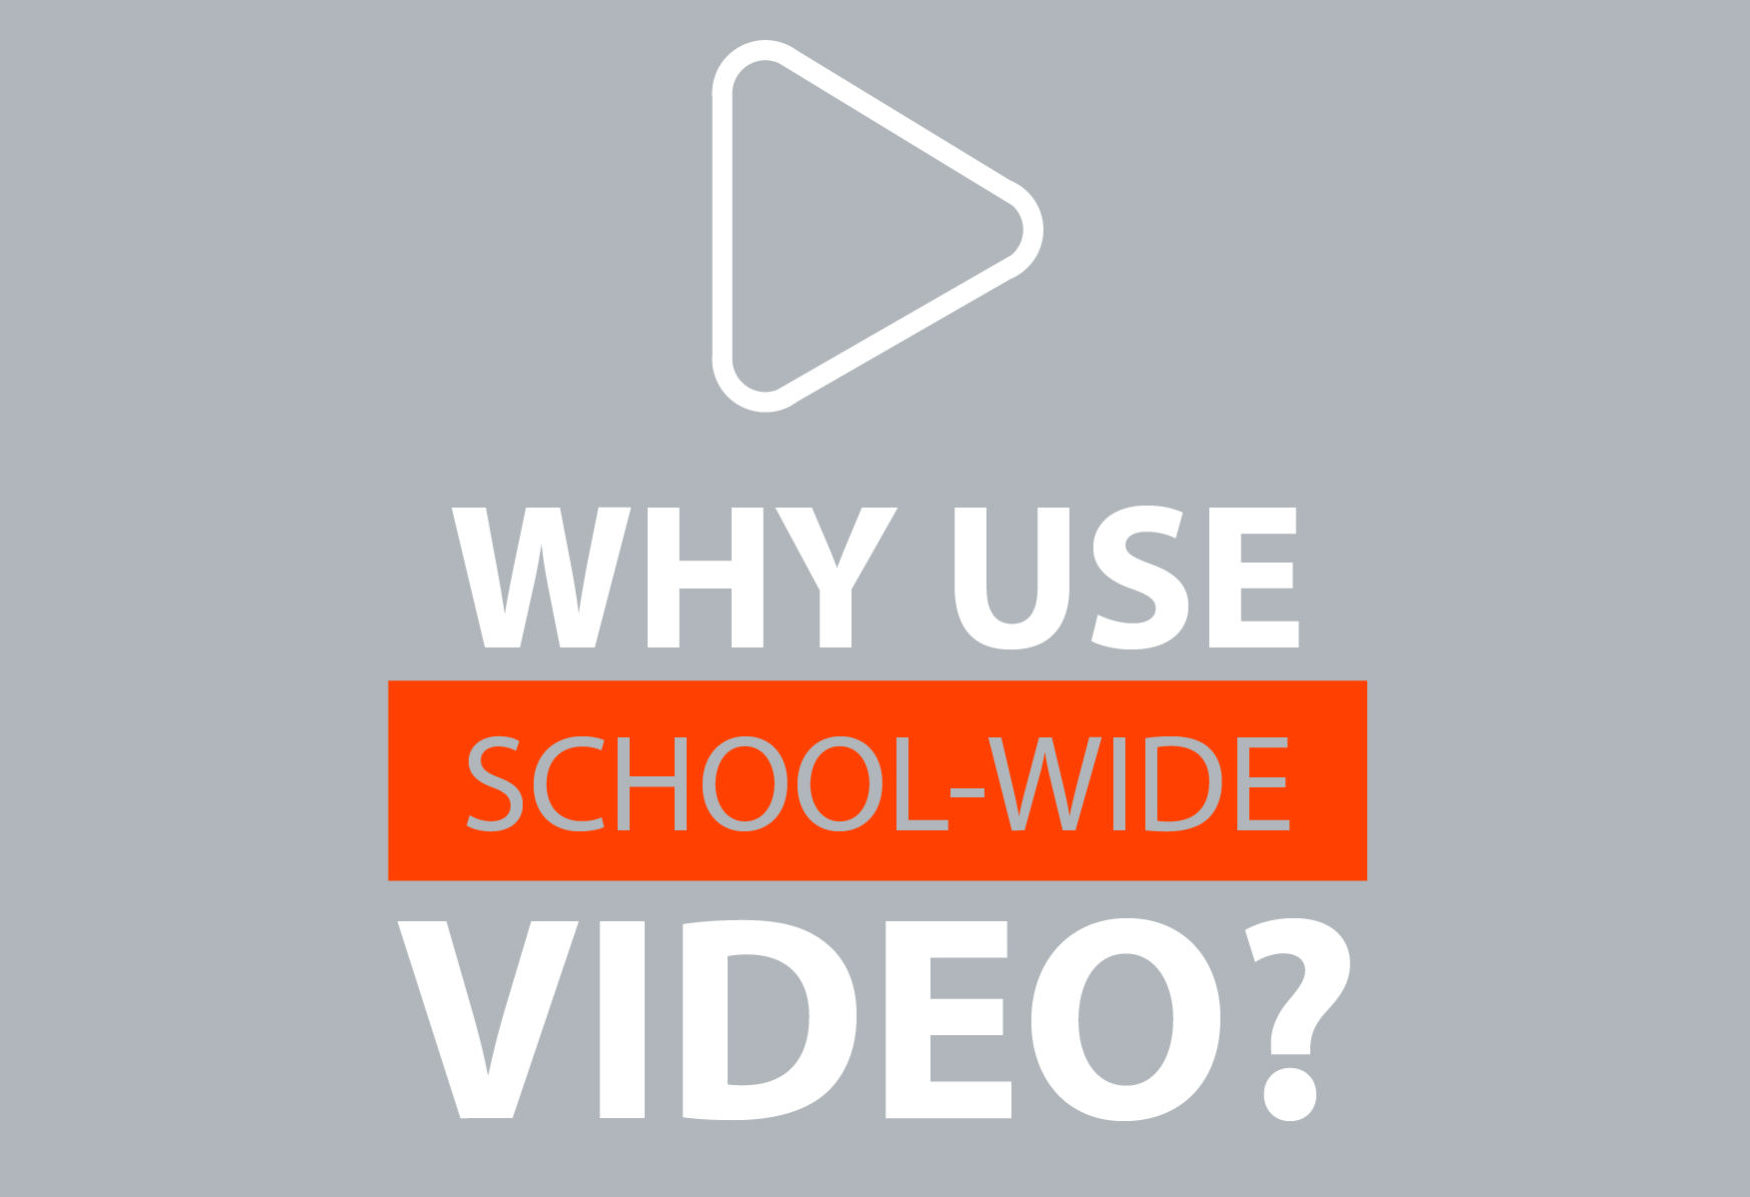 Why use classroom video—VIEWpath?